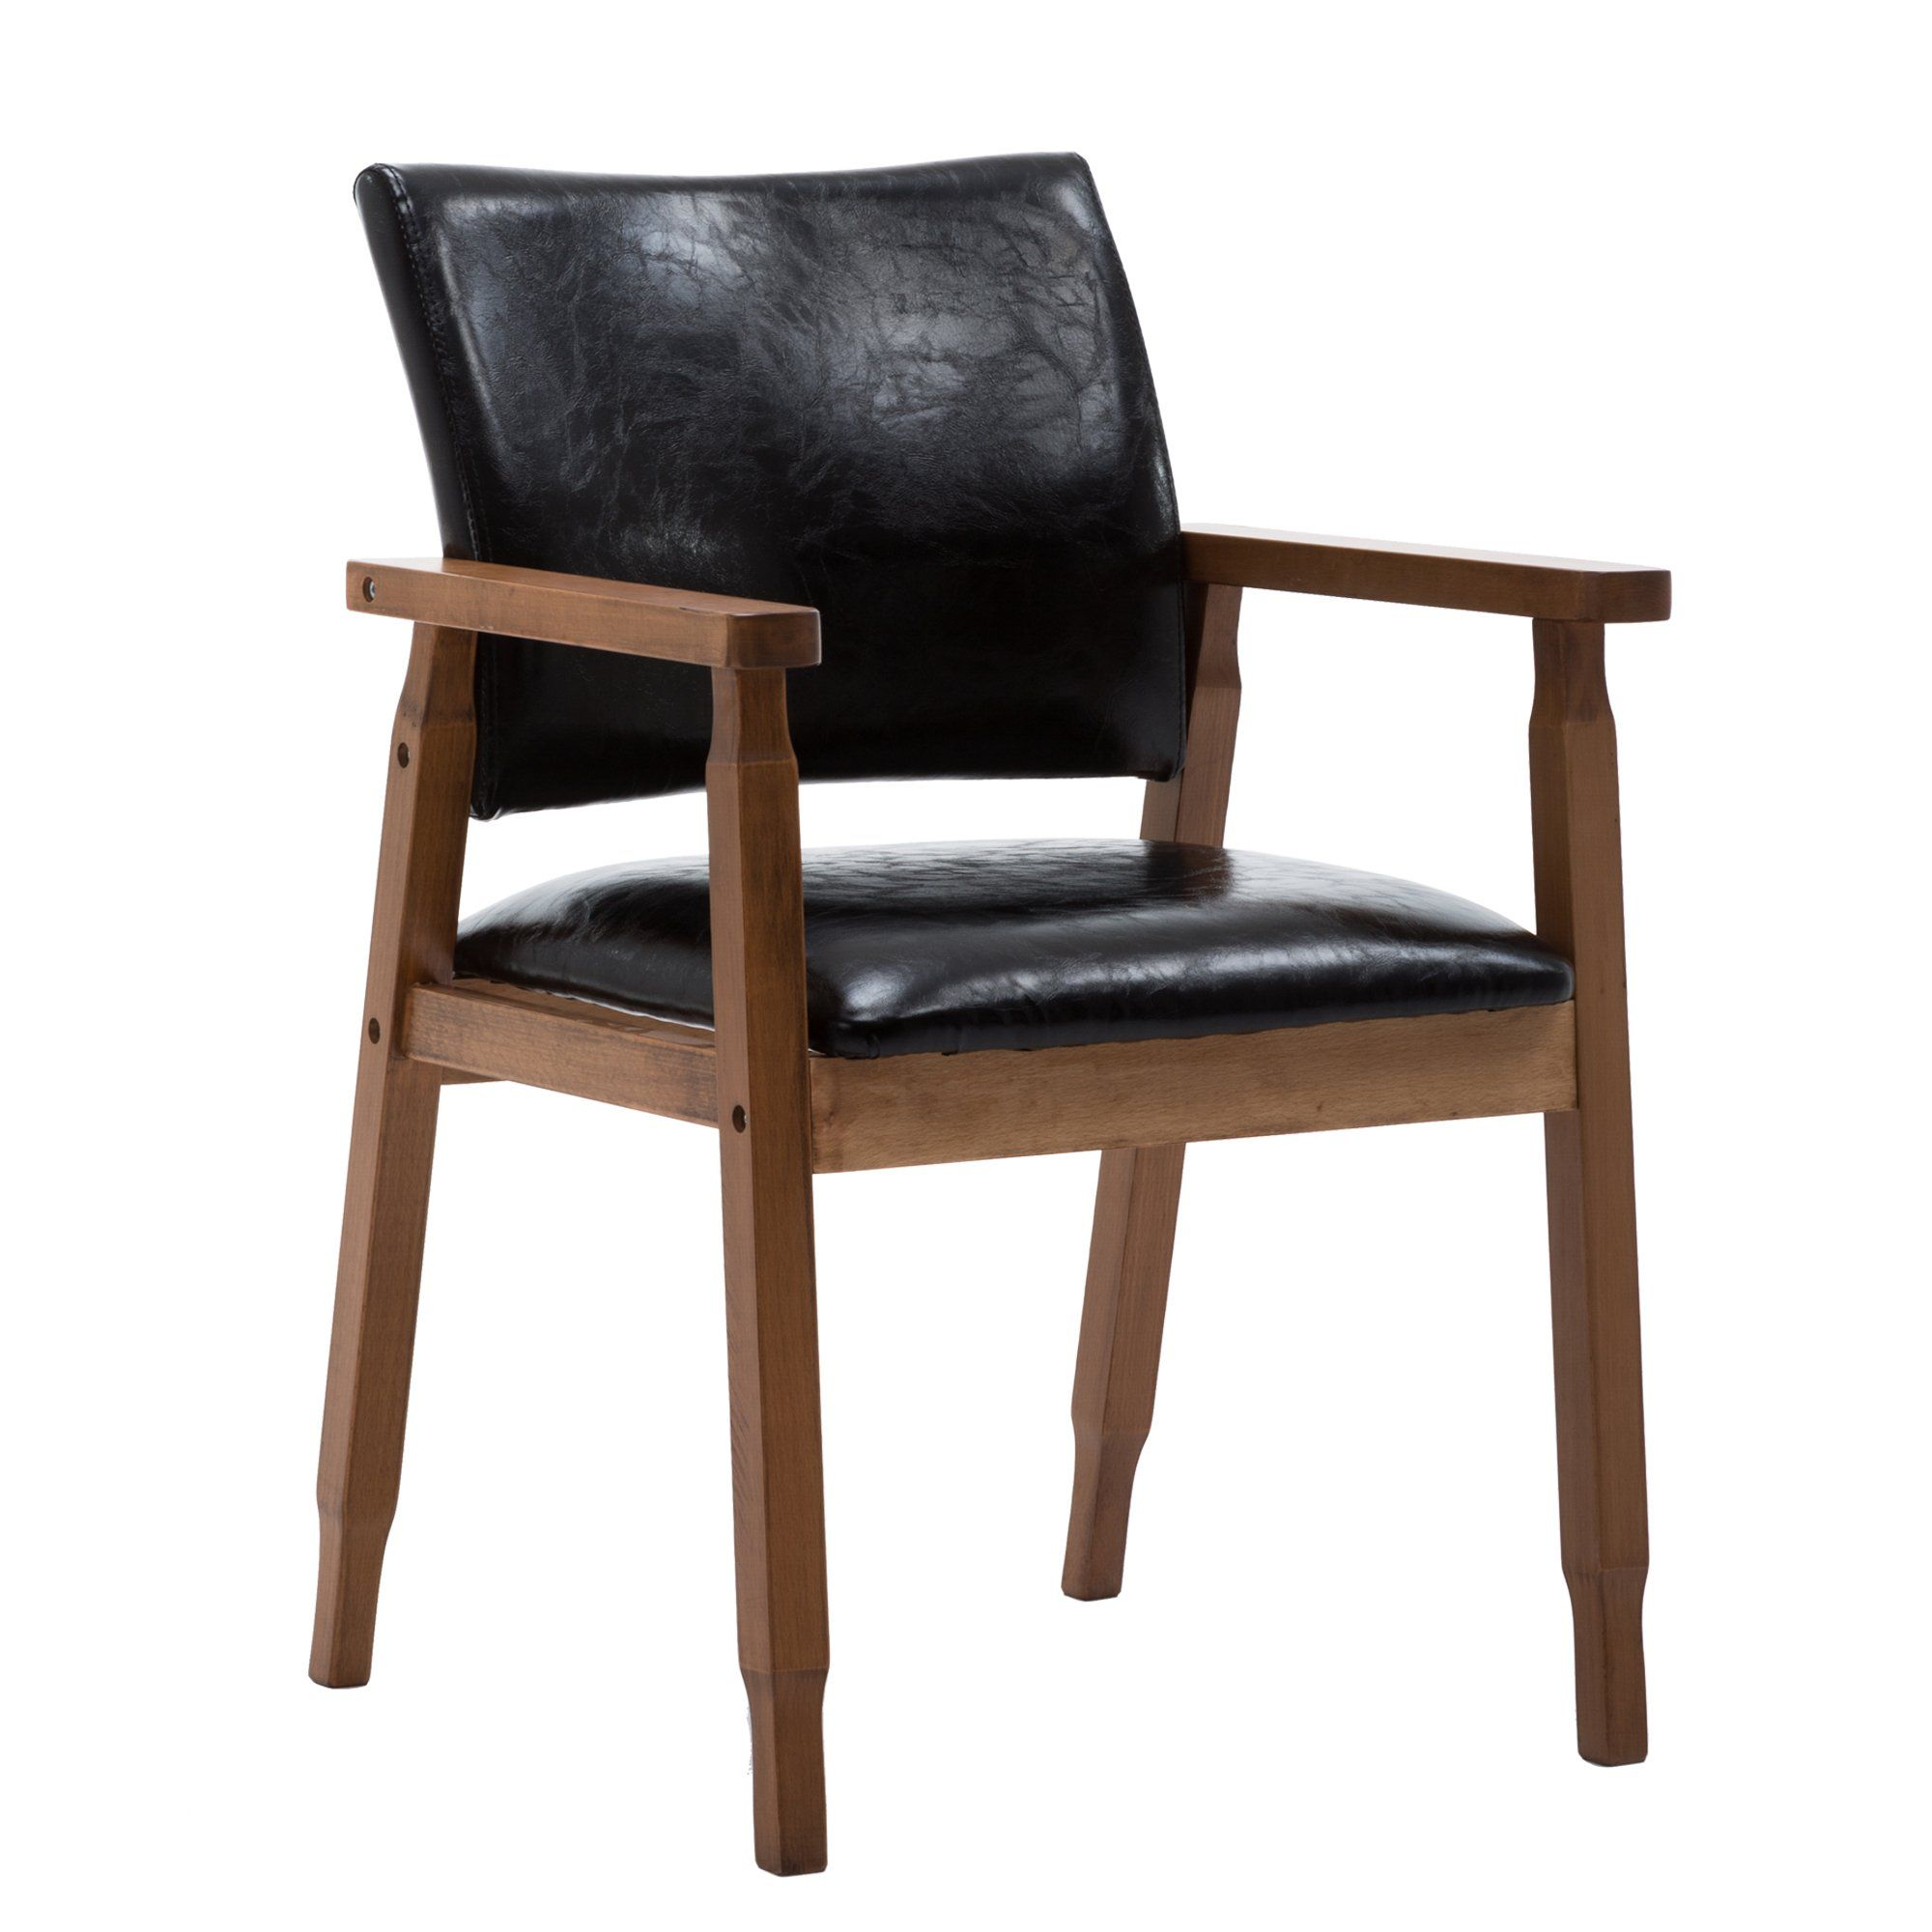 NOBPEINT MidCentury Dining Side Chair with Faux Leather